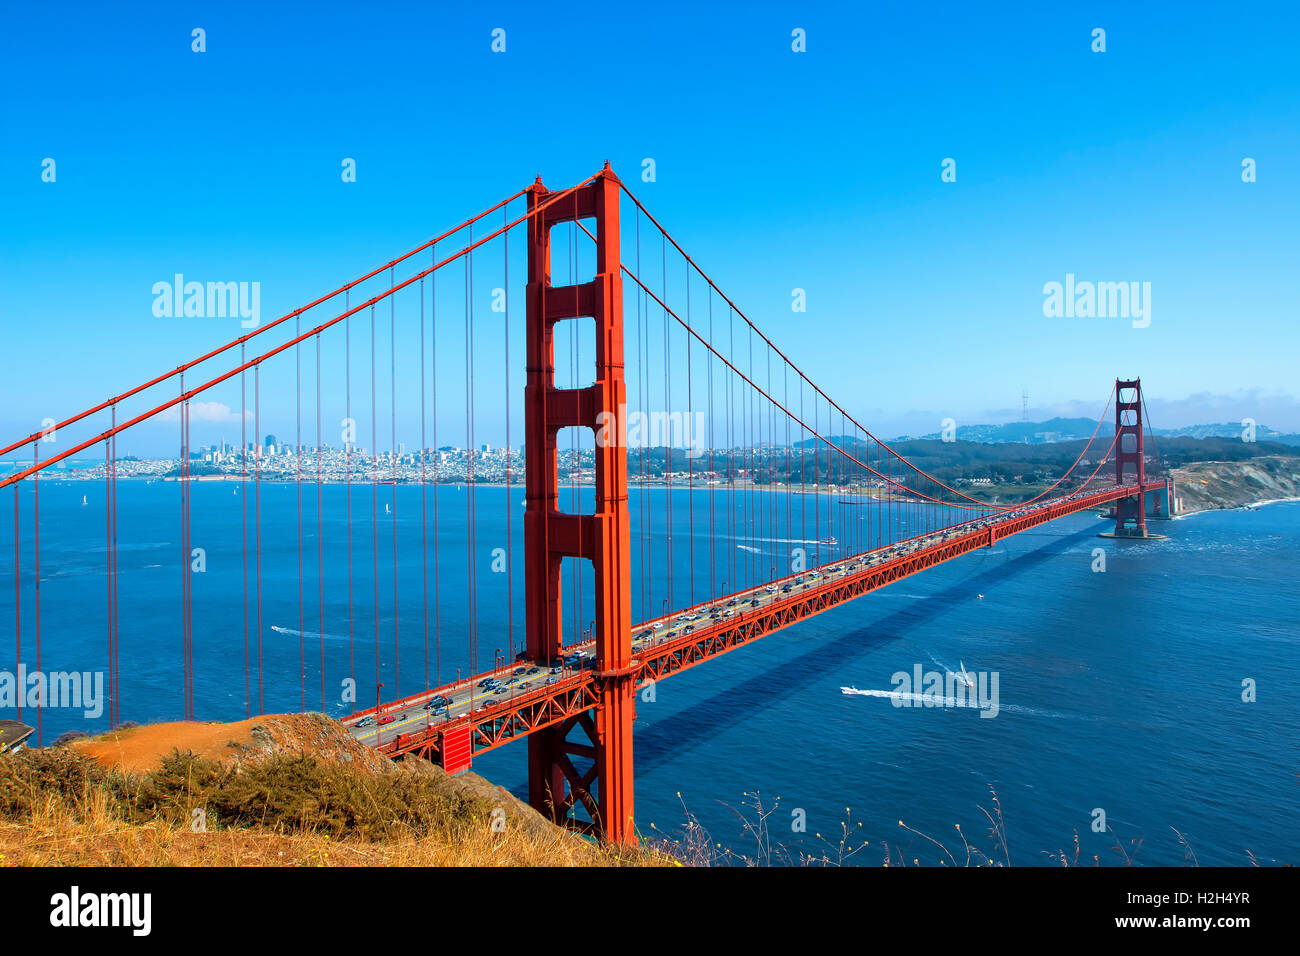 Golden gate Bridge and San Francisco Skyline - Stock Image